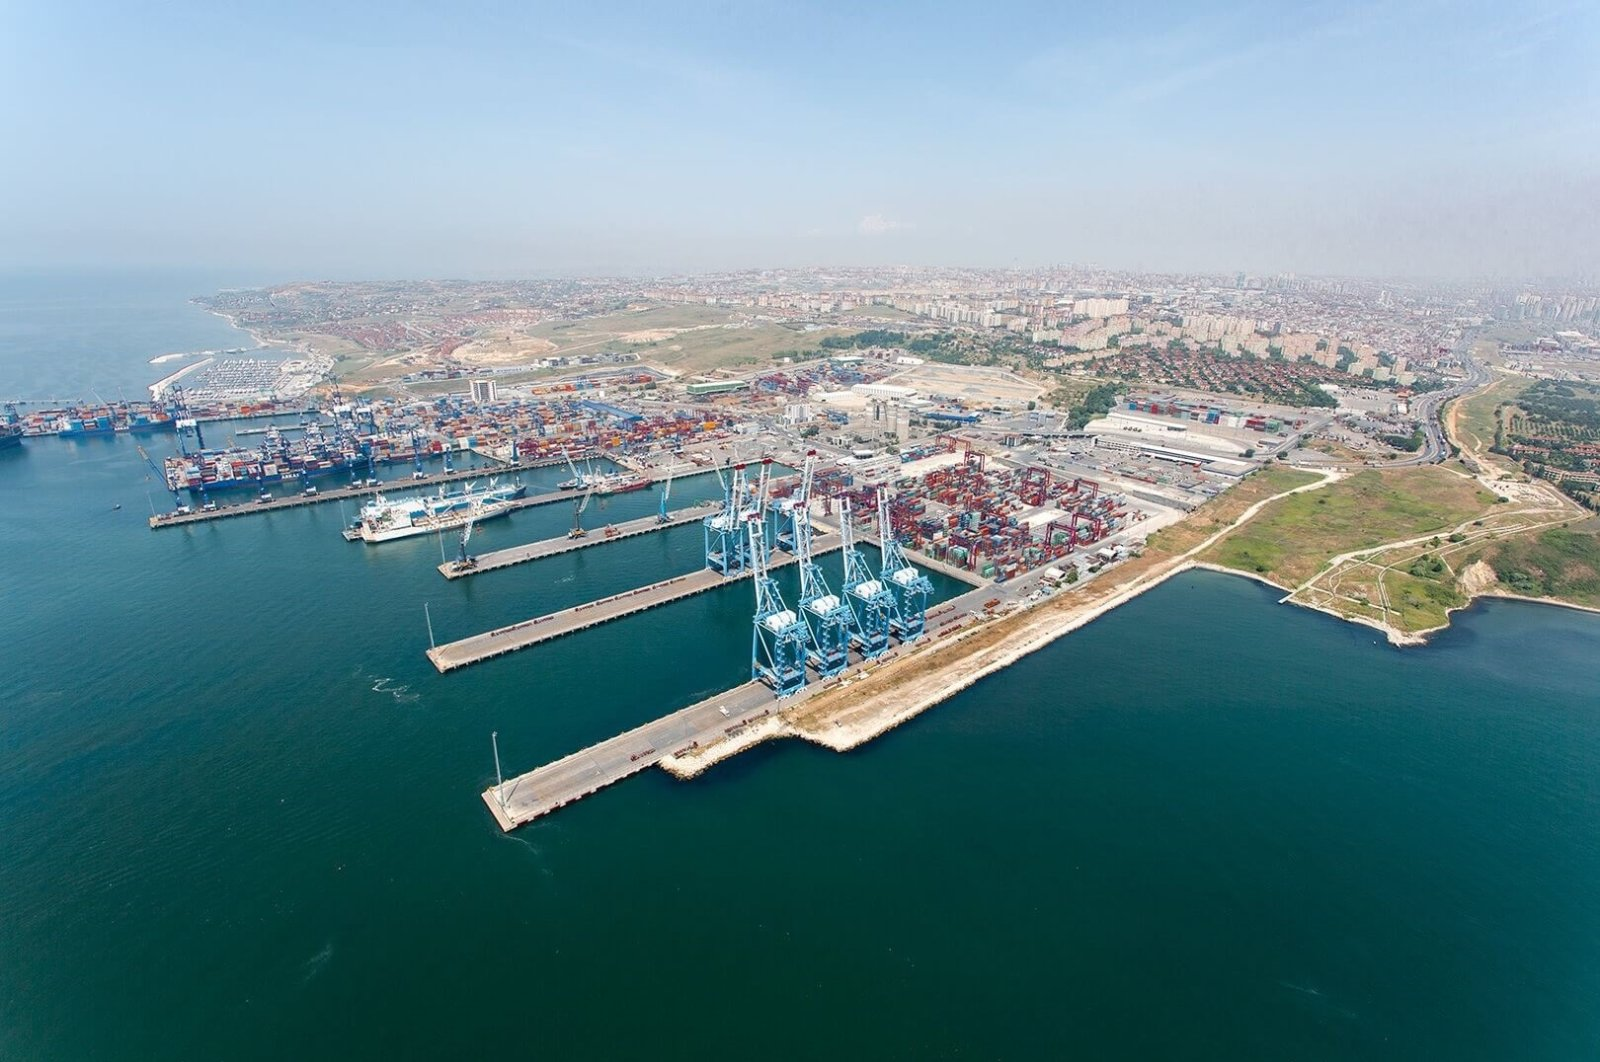 Containers and ships are seen at Kumport, one of Turkey's largest ports, in Istanbul. (Photo courtesy of Kumport)